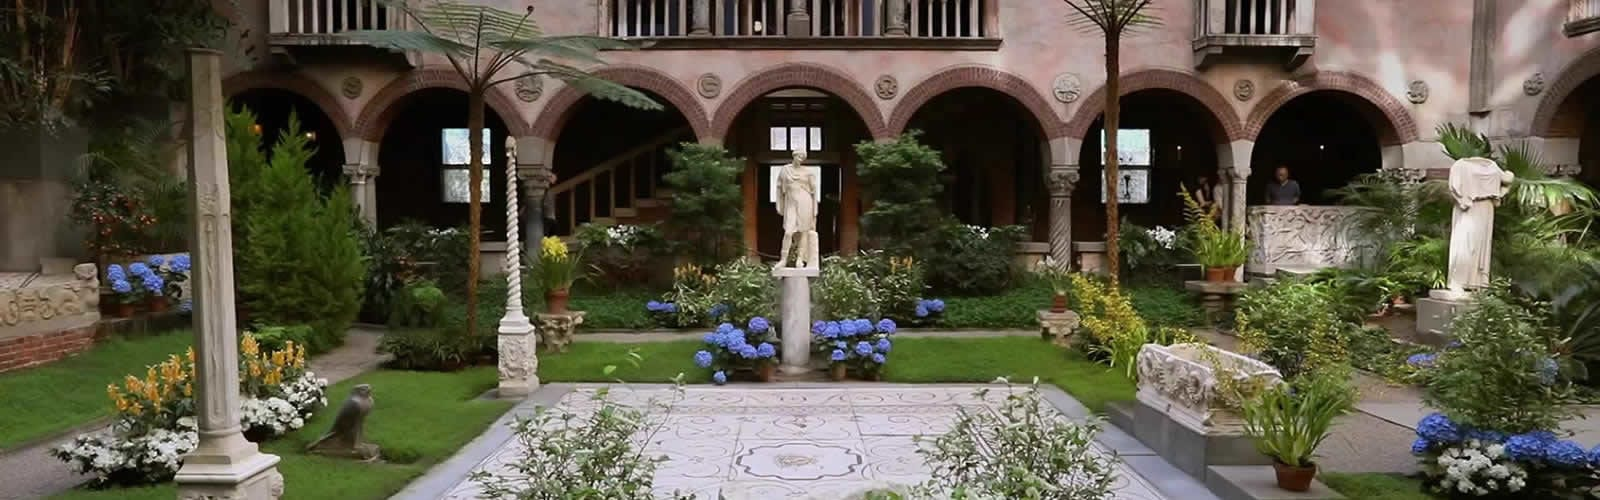 isabella-stewart-gardner-museum-collection-art-americain-une